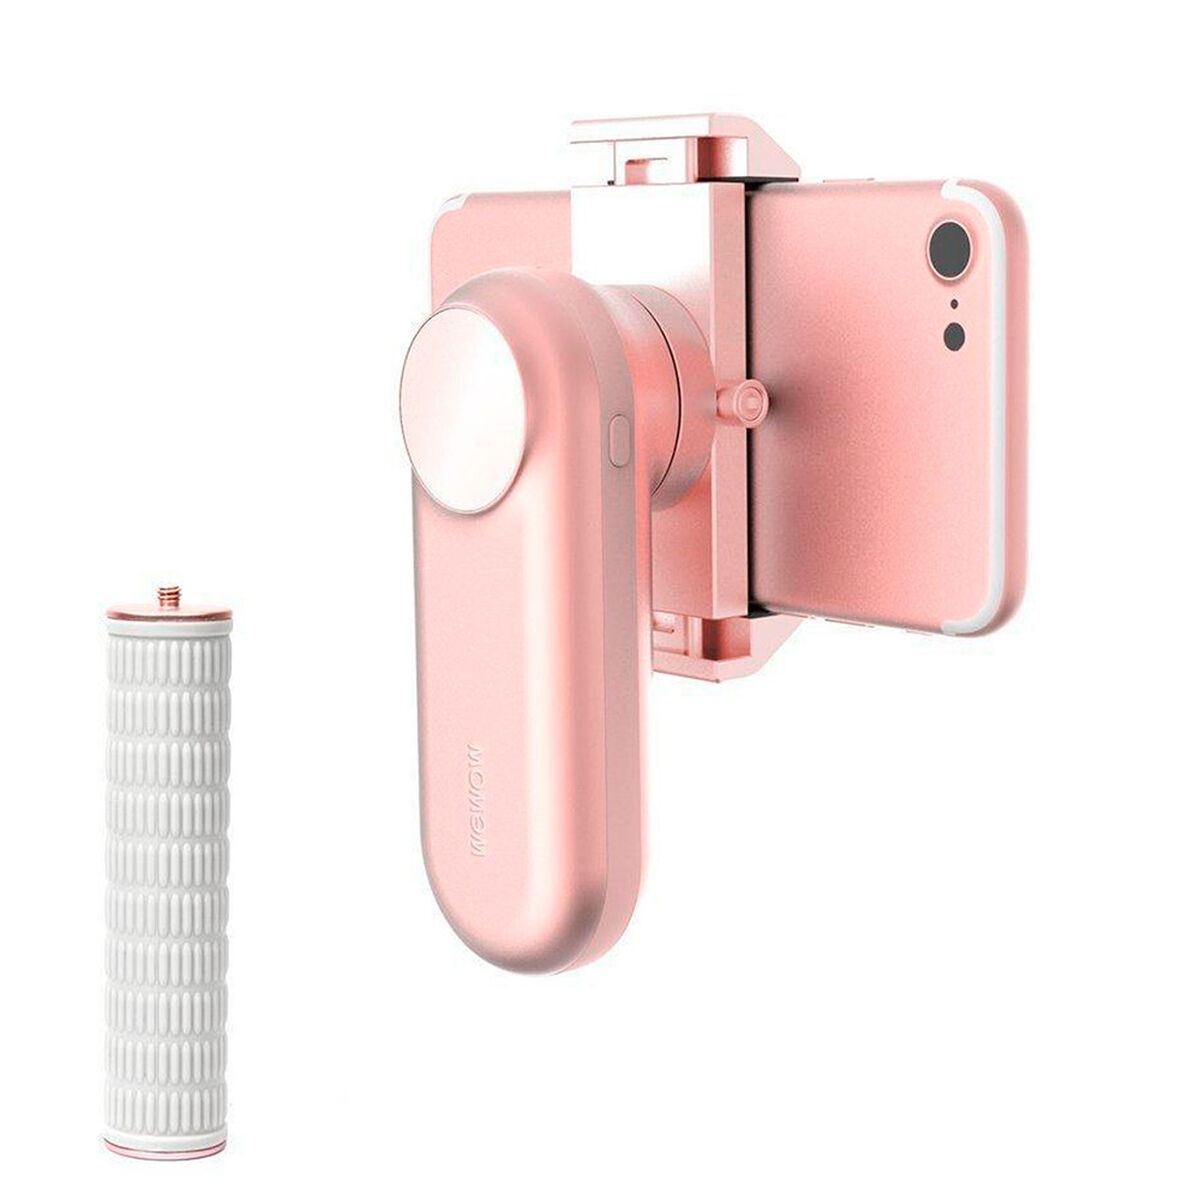 Estabilizador Video para celulares Fancy Rosado